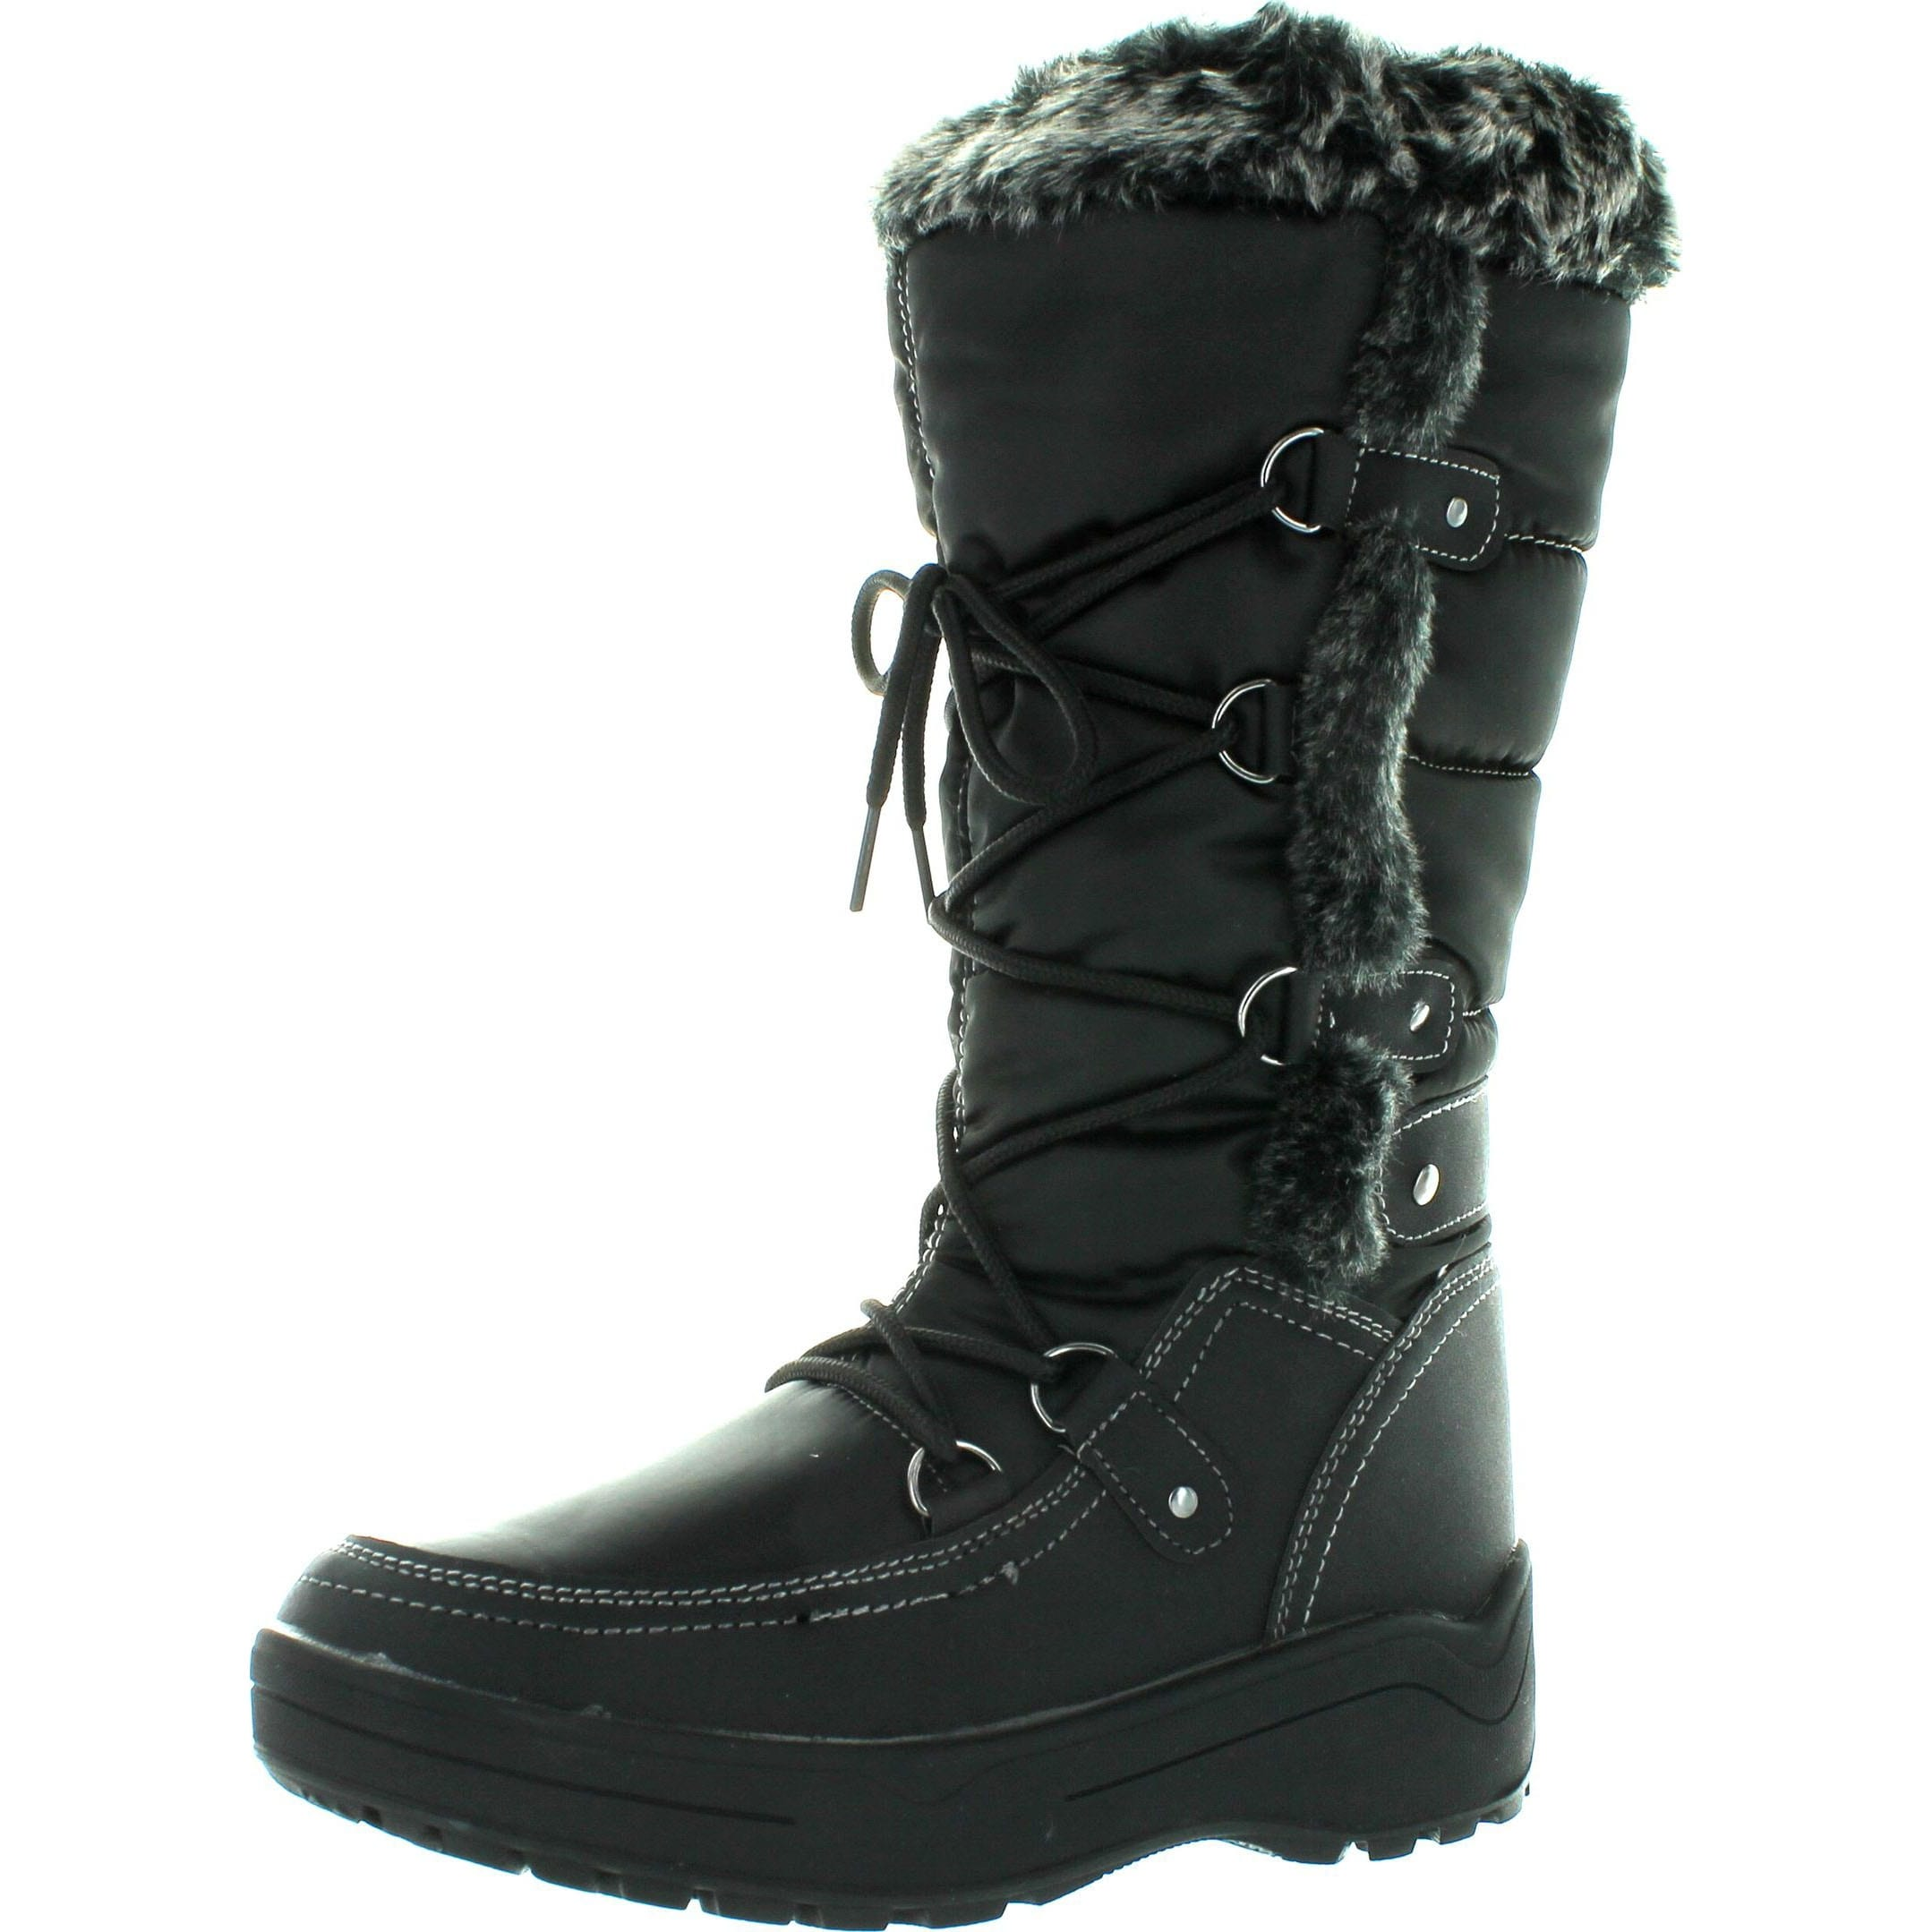 Men's Black Winter Snow Boots Shoes Faux Fur Lined Warm Wide CLF-05 Black-9